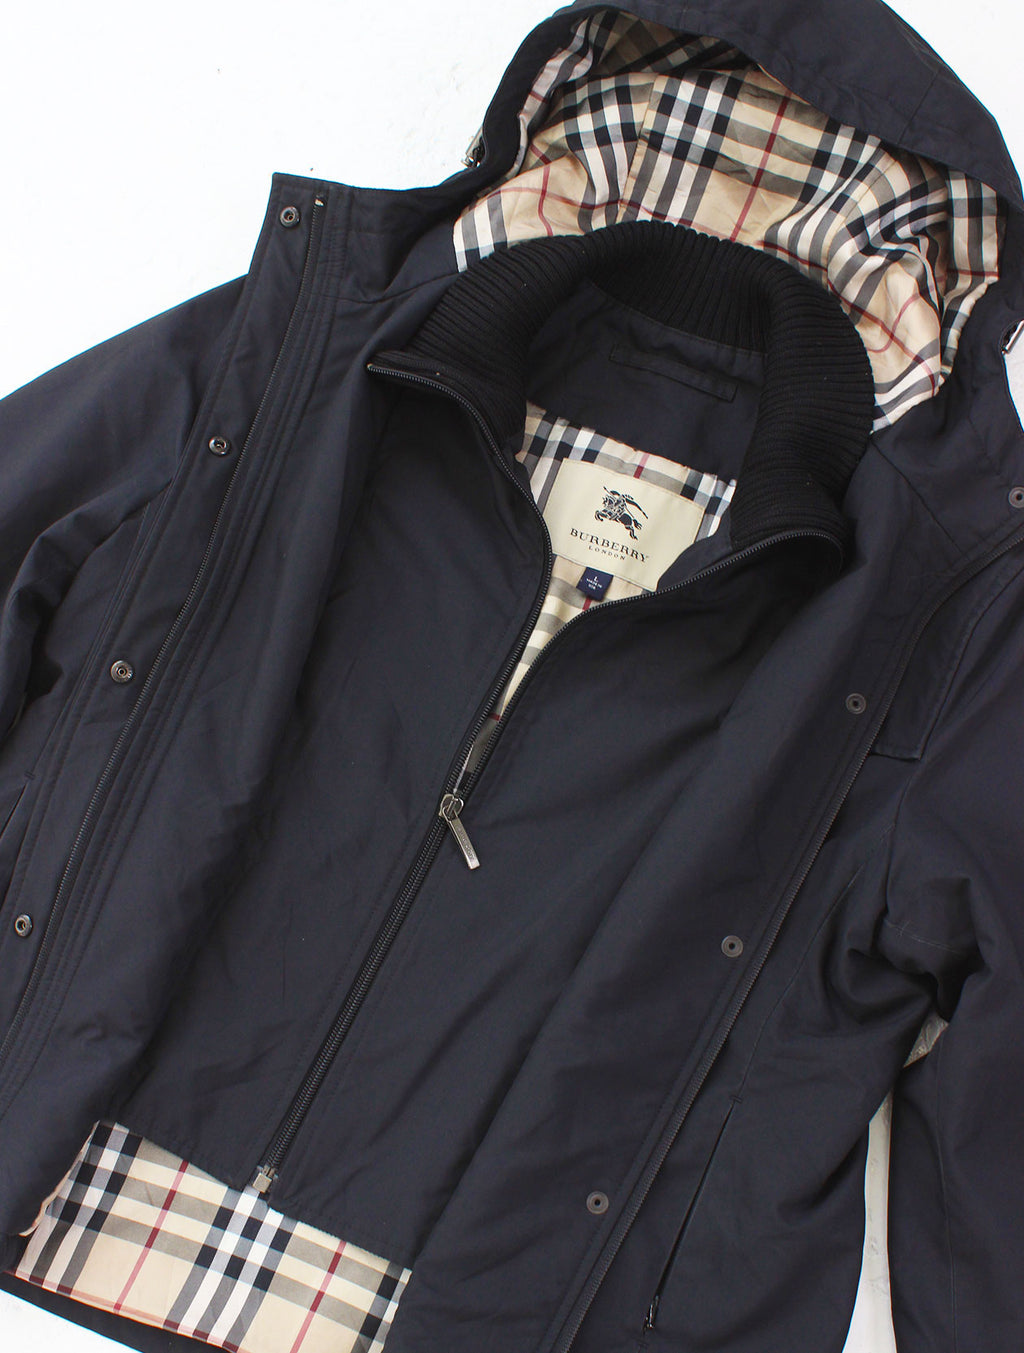 Women's Burberry Jacket (L)